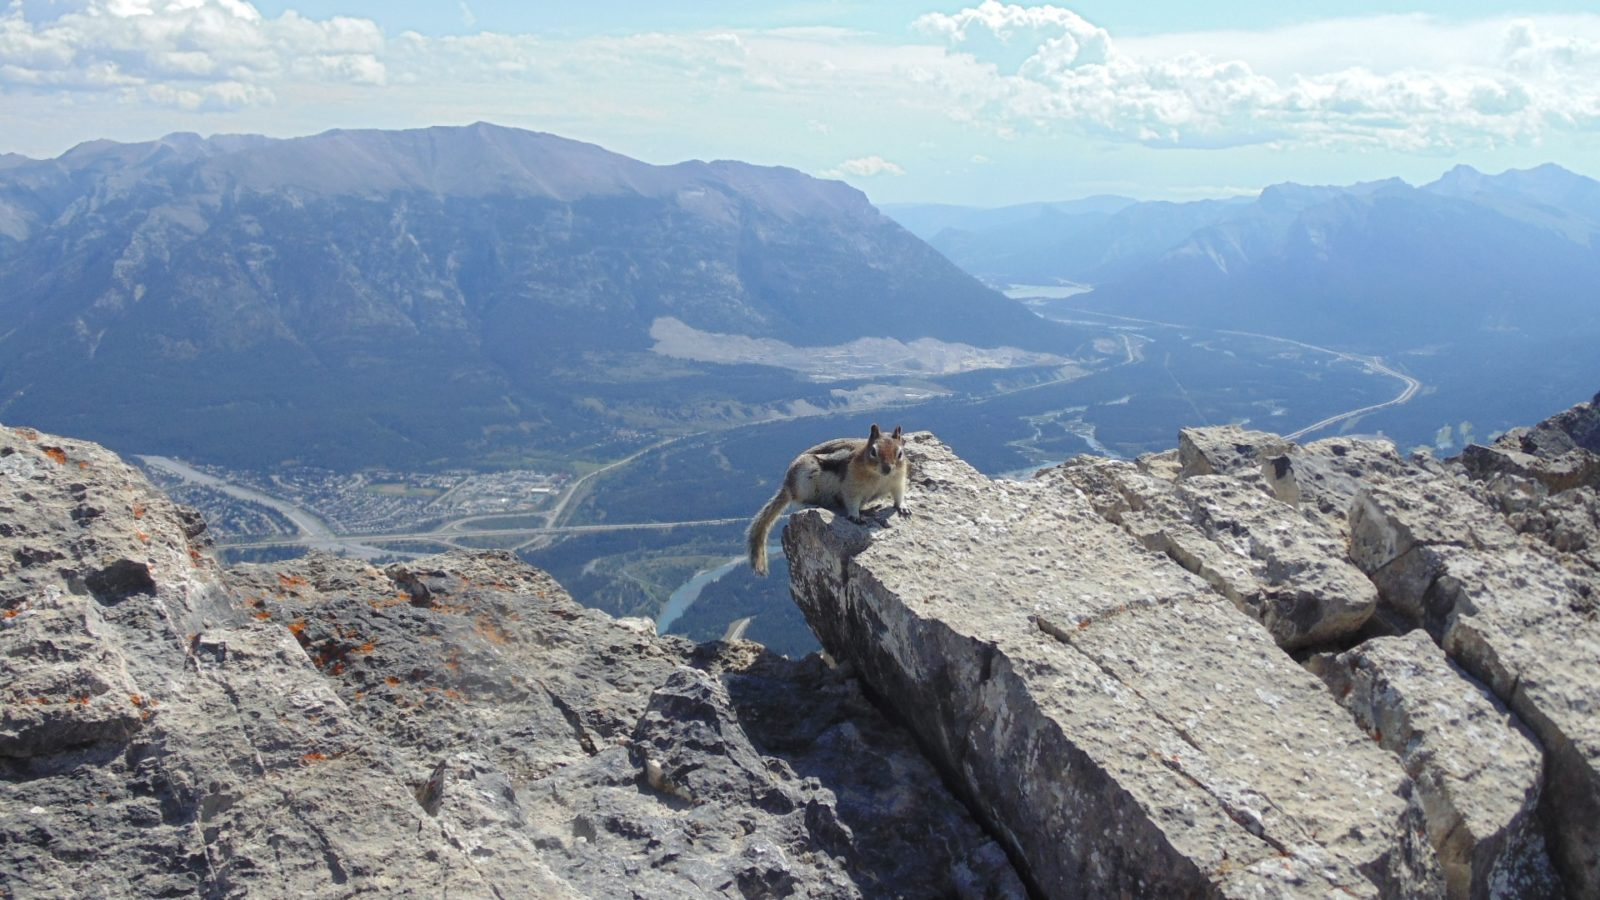 Chipmunk On Mount Ha Ling, Looking At Trans-Canada From Over Canmore